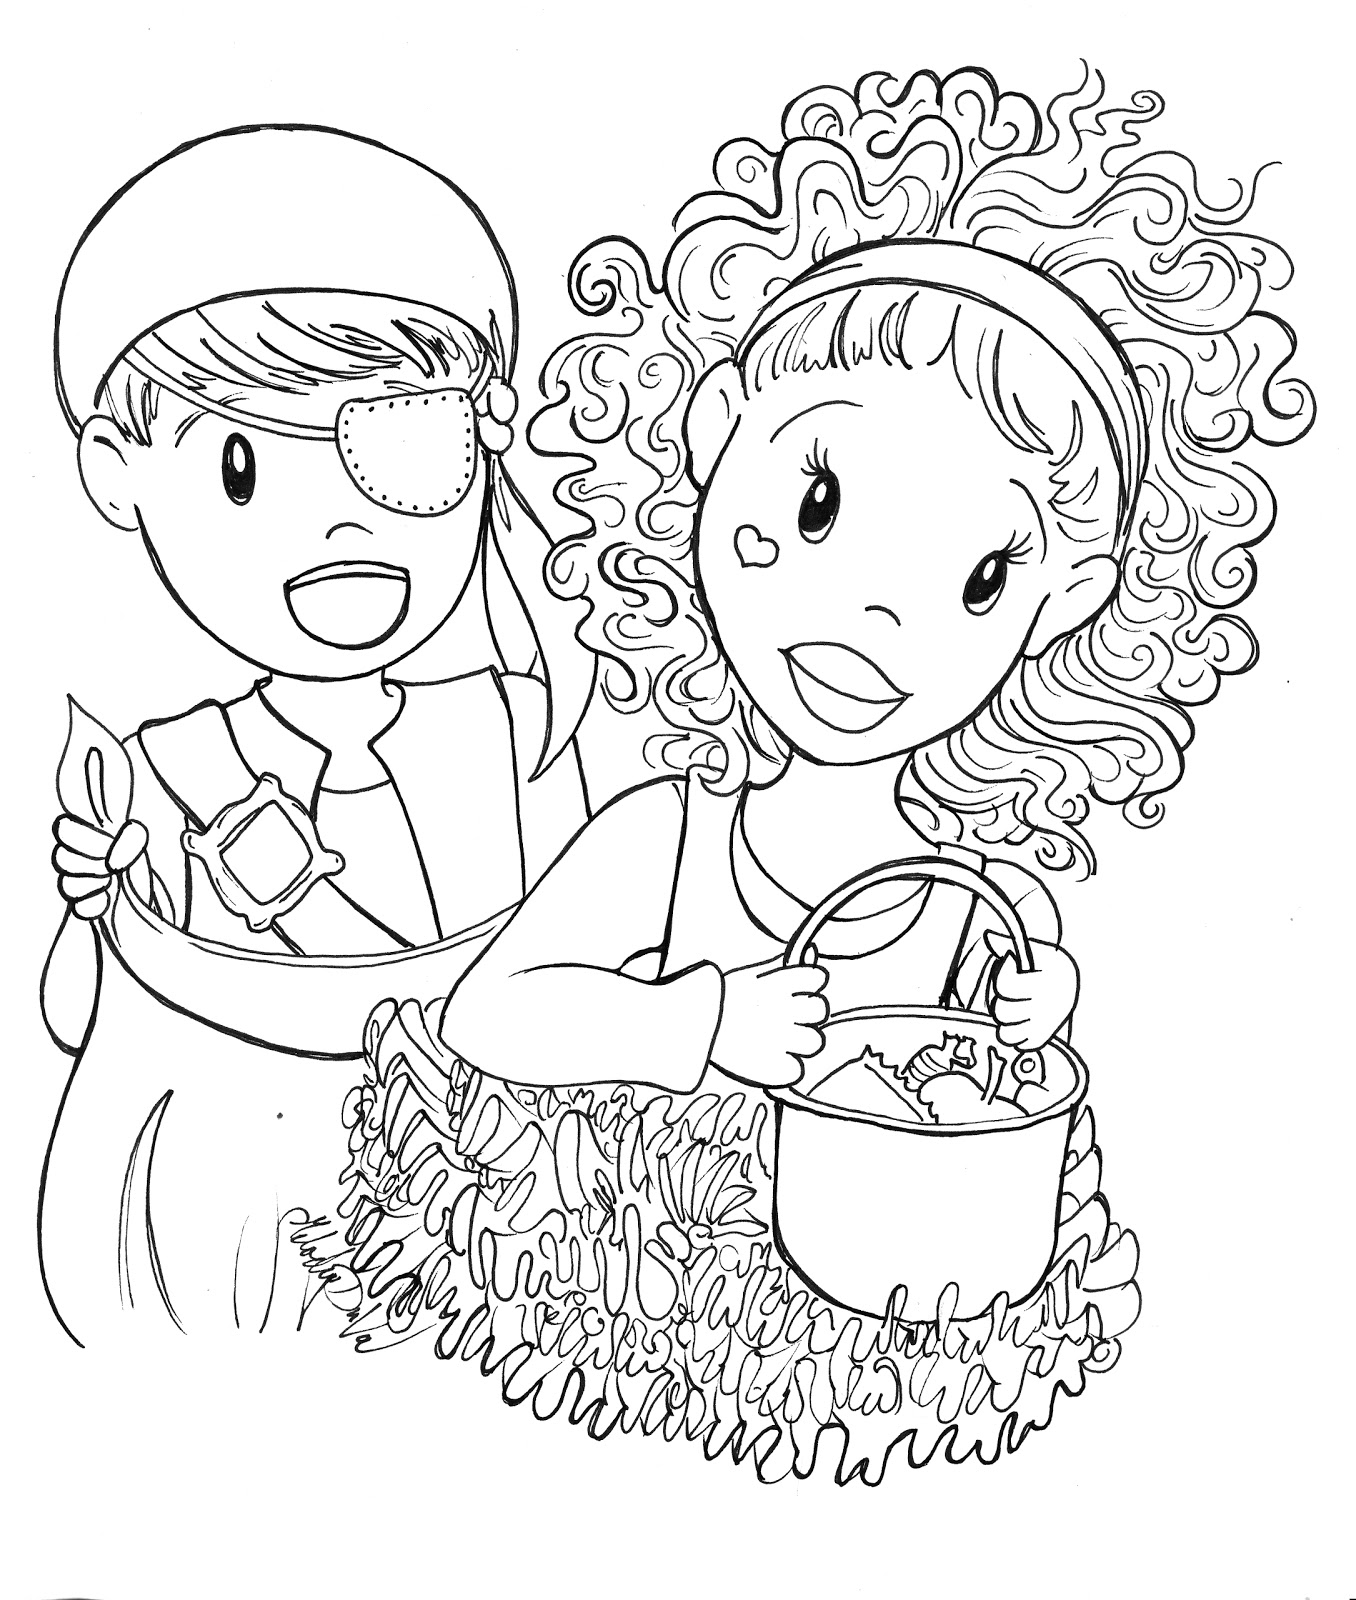 coloring pages 28 october attack - photo#2